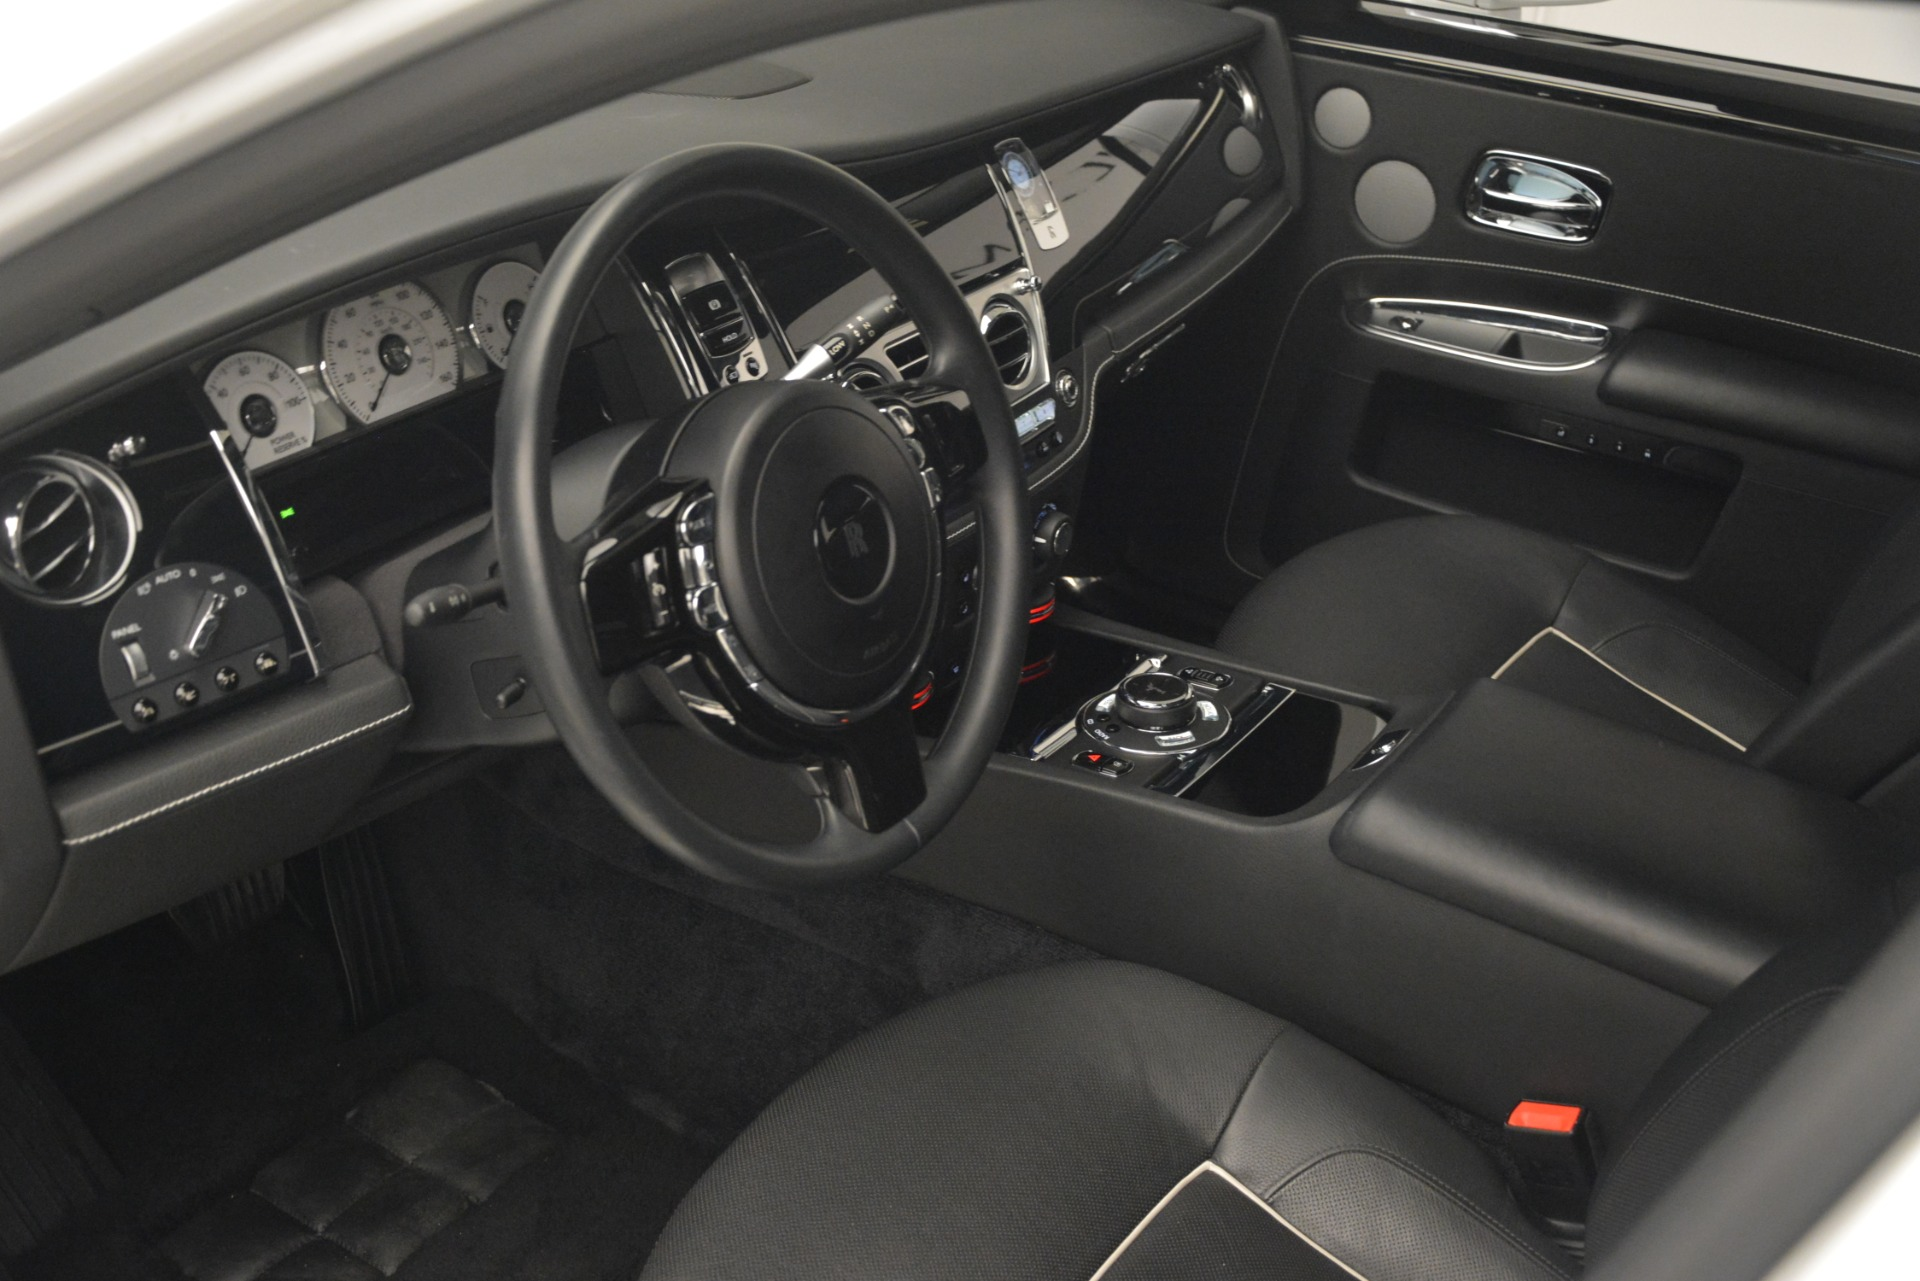 Used 2014 Rolls-Royce Ghost V-Spec For Sale In Westport, CT 2989_p14